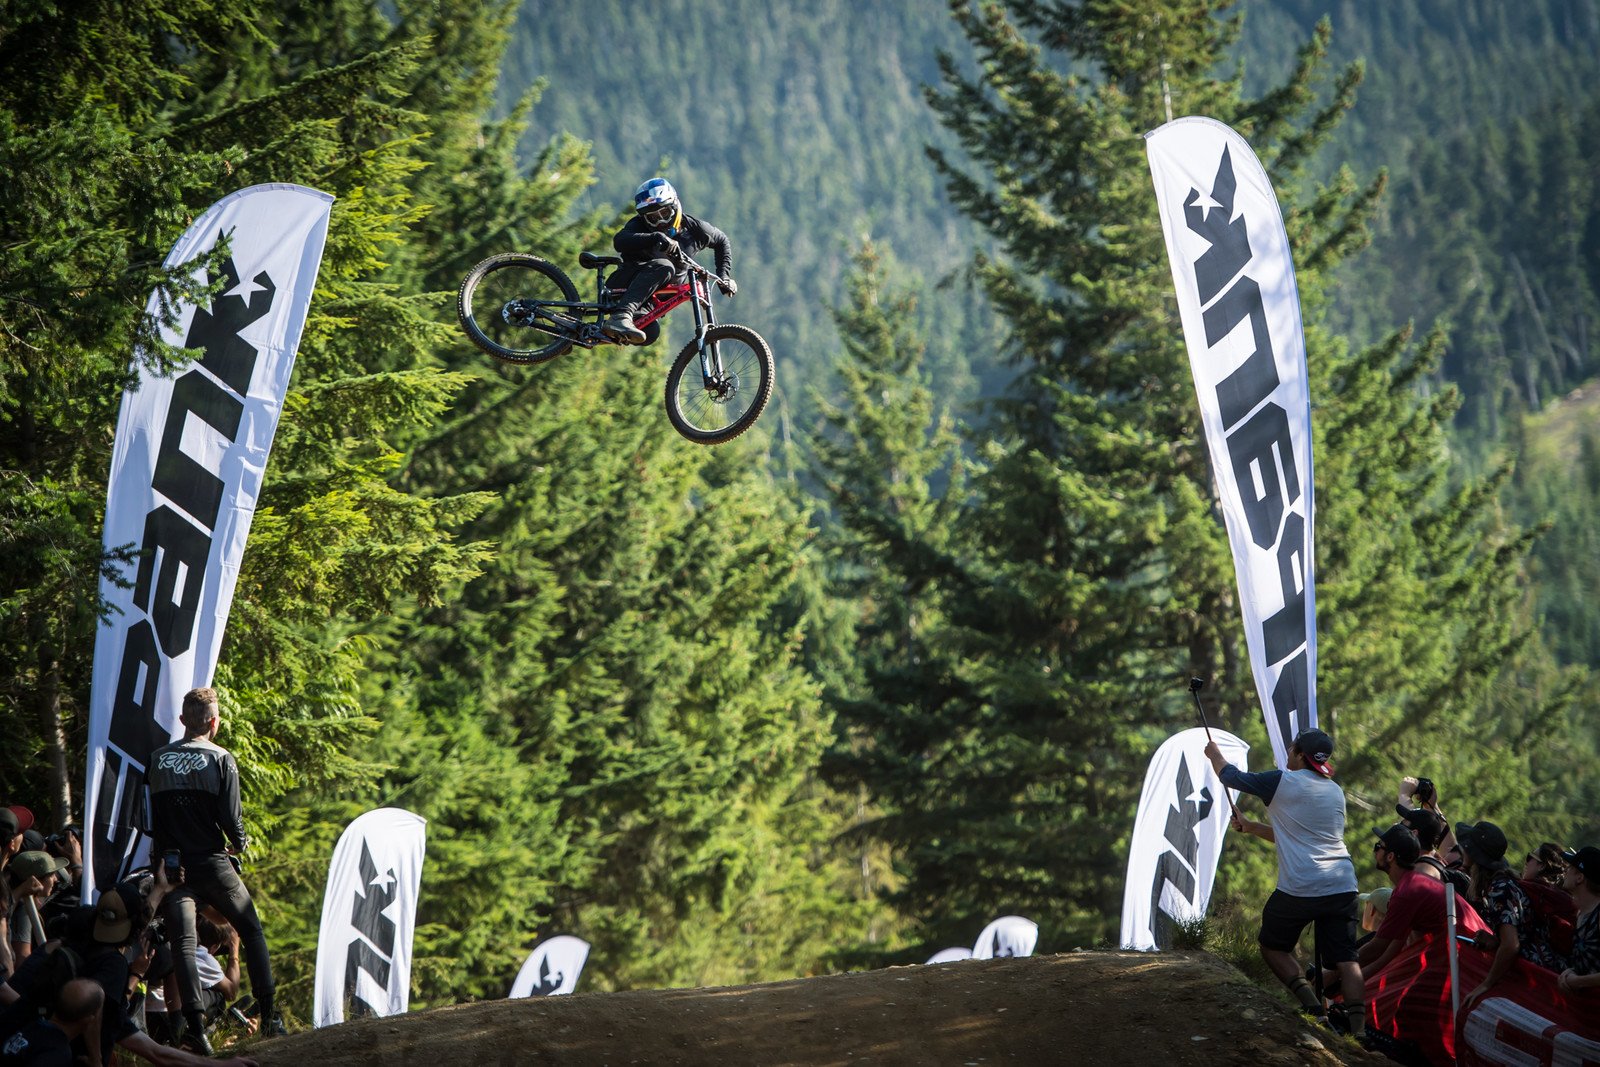 Storch Boost - 2019 Whip-Off World Champs Crankworx Whistler - Mountain Biking Pictures - Vital MTB